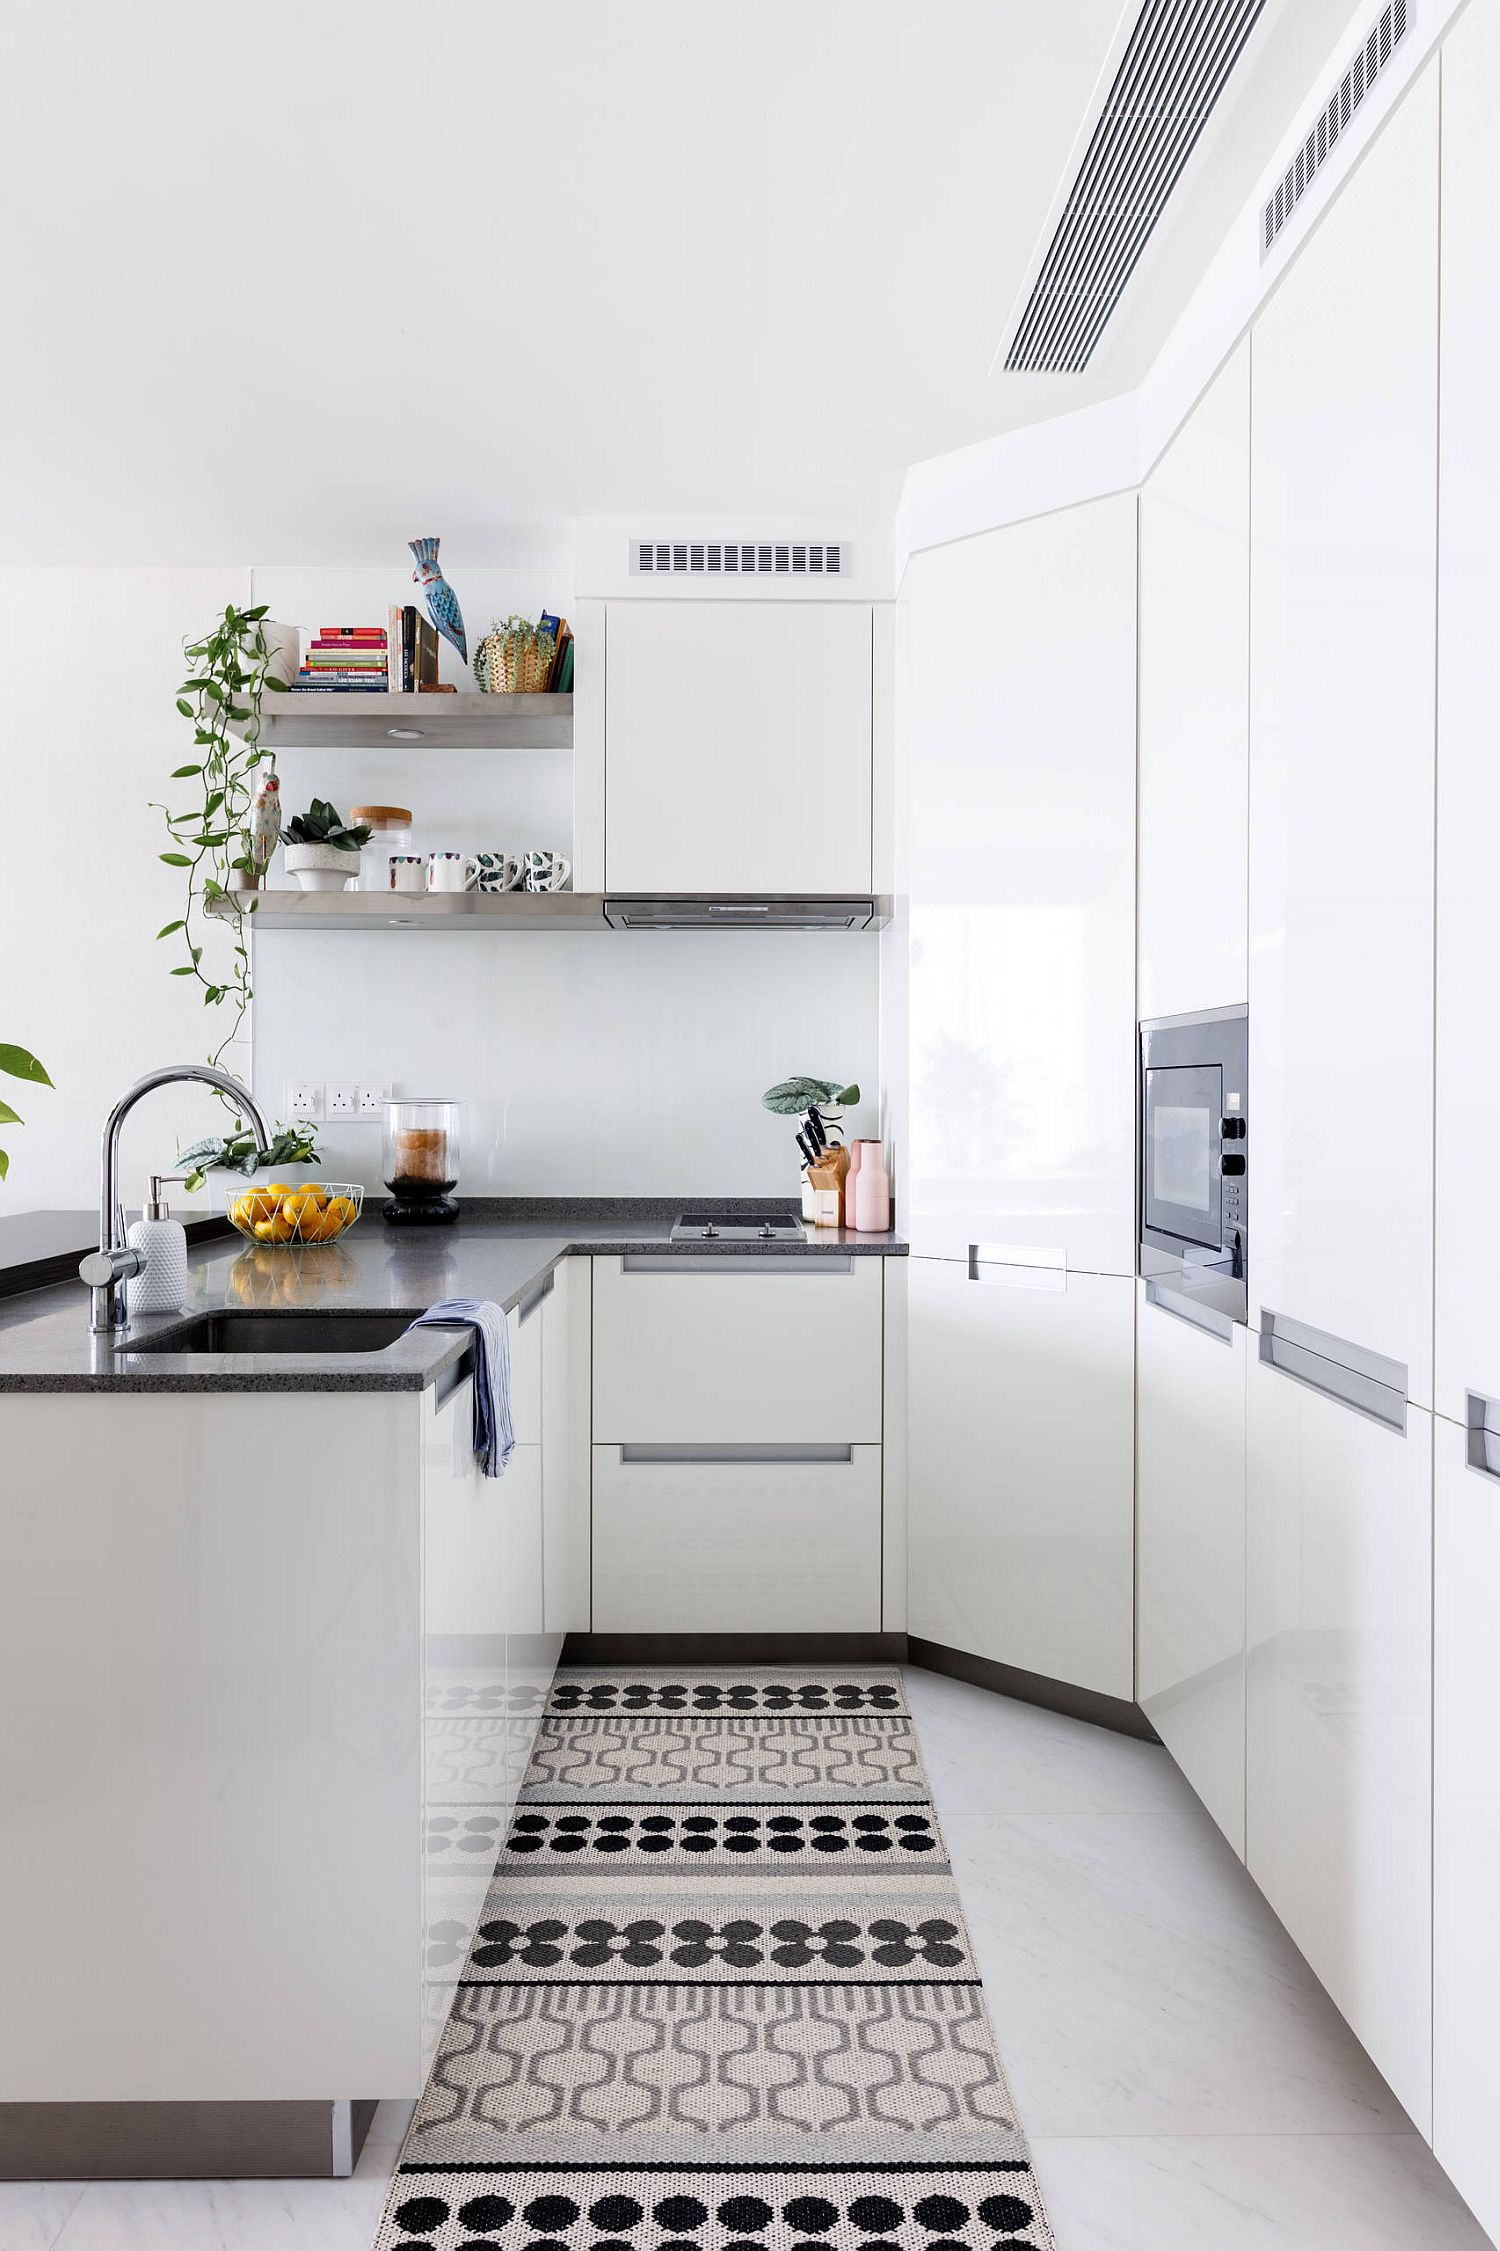 Tiny kitchen in the corner puts efficiency above all else